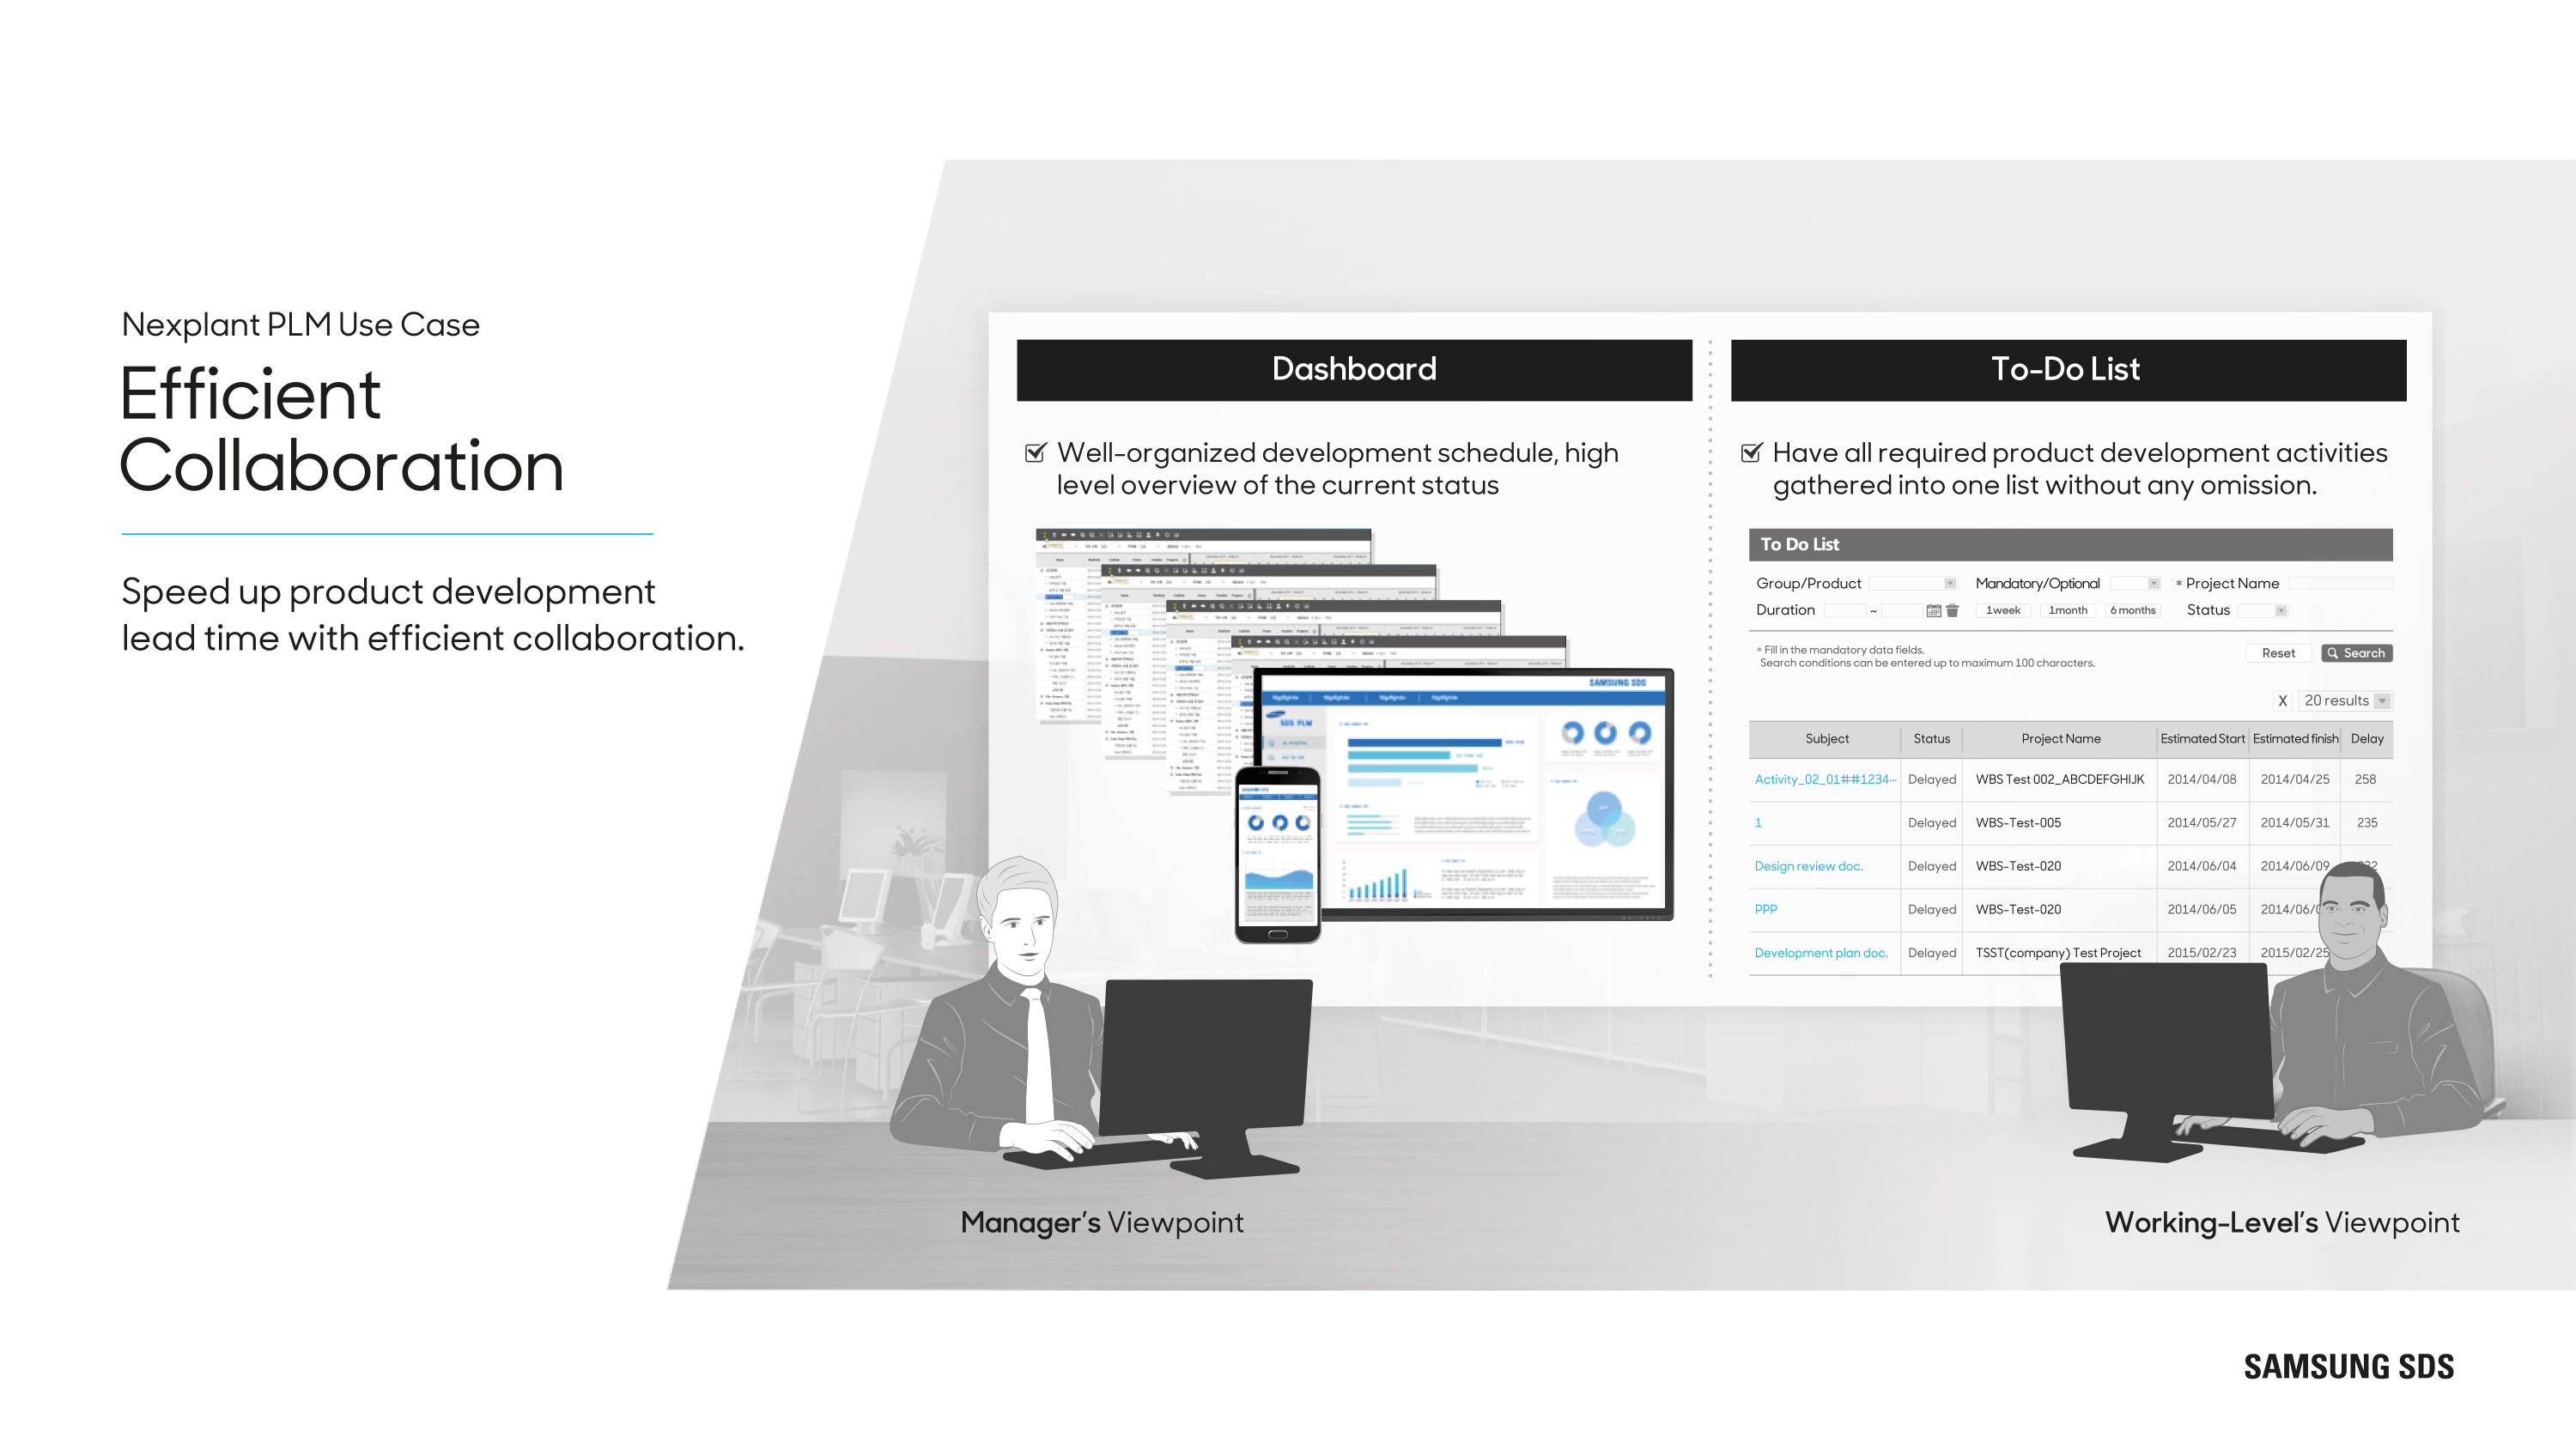 Efficient Collaboration Speed up product development lead time with efficient collaboration.